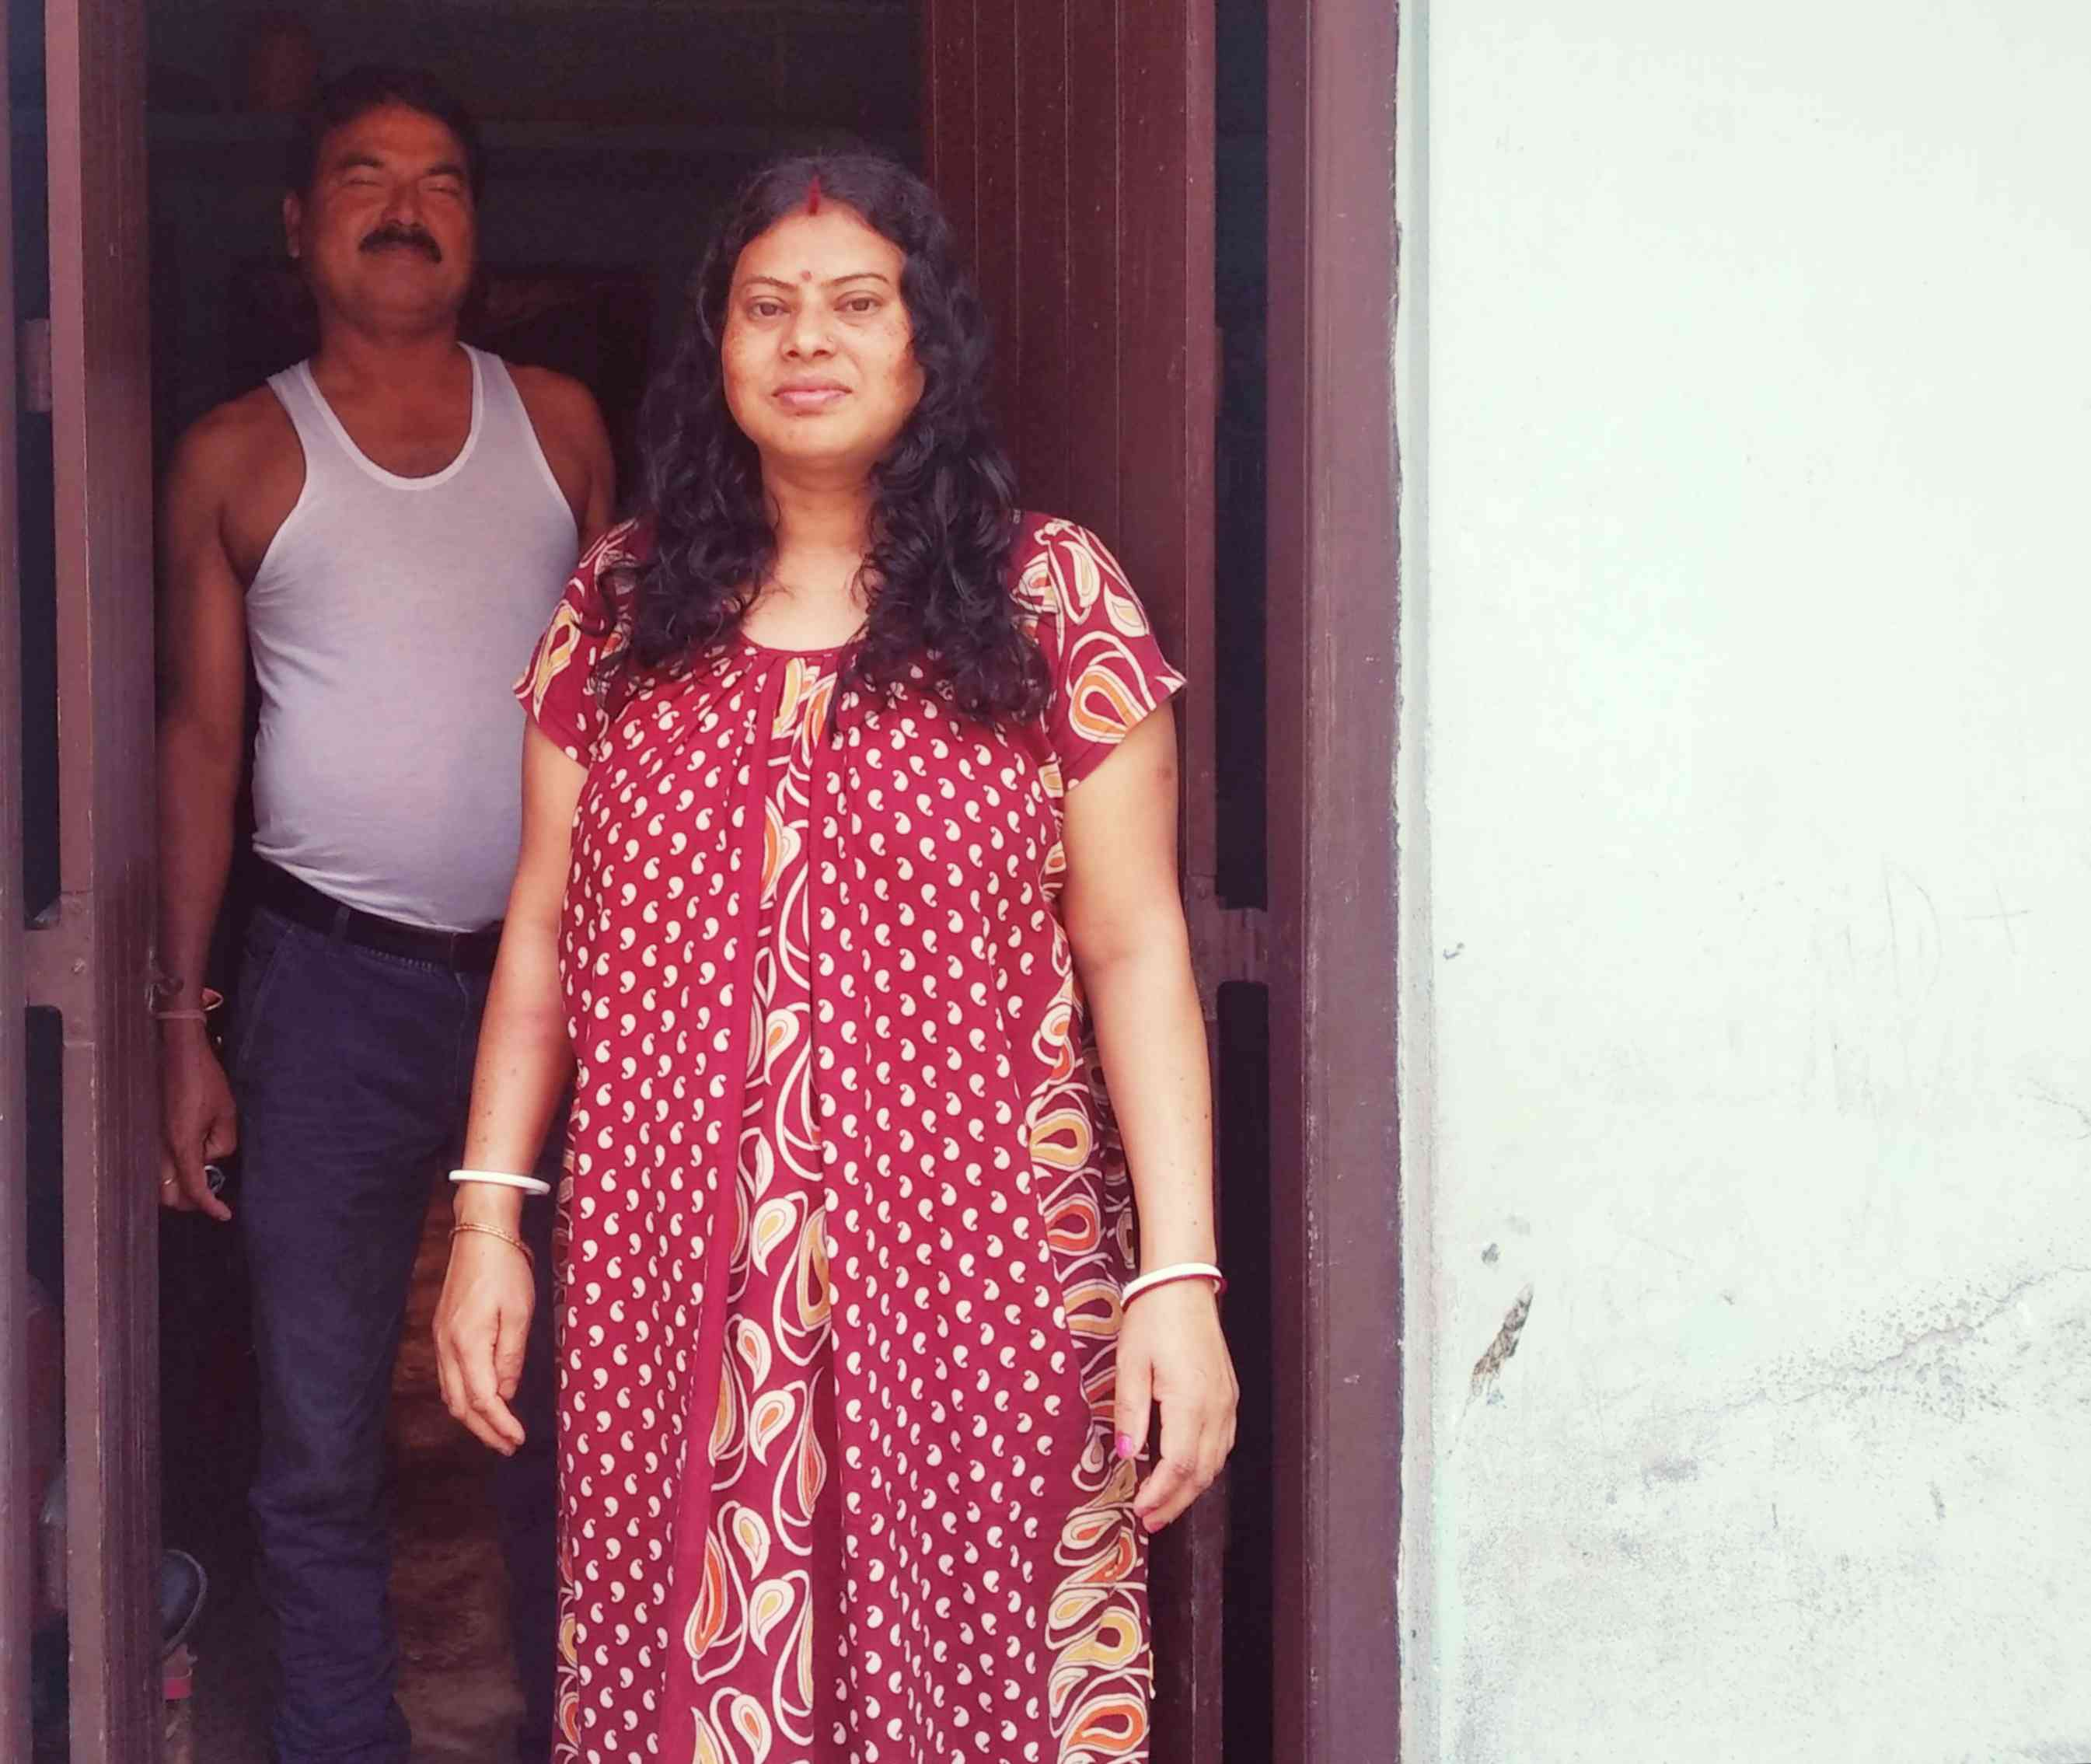 Anita Sarkar and her husband Prabir Sarkar. Anita Sarkar's brother took the train from Bengal to attend her hearing but the objector failed to turn up.